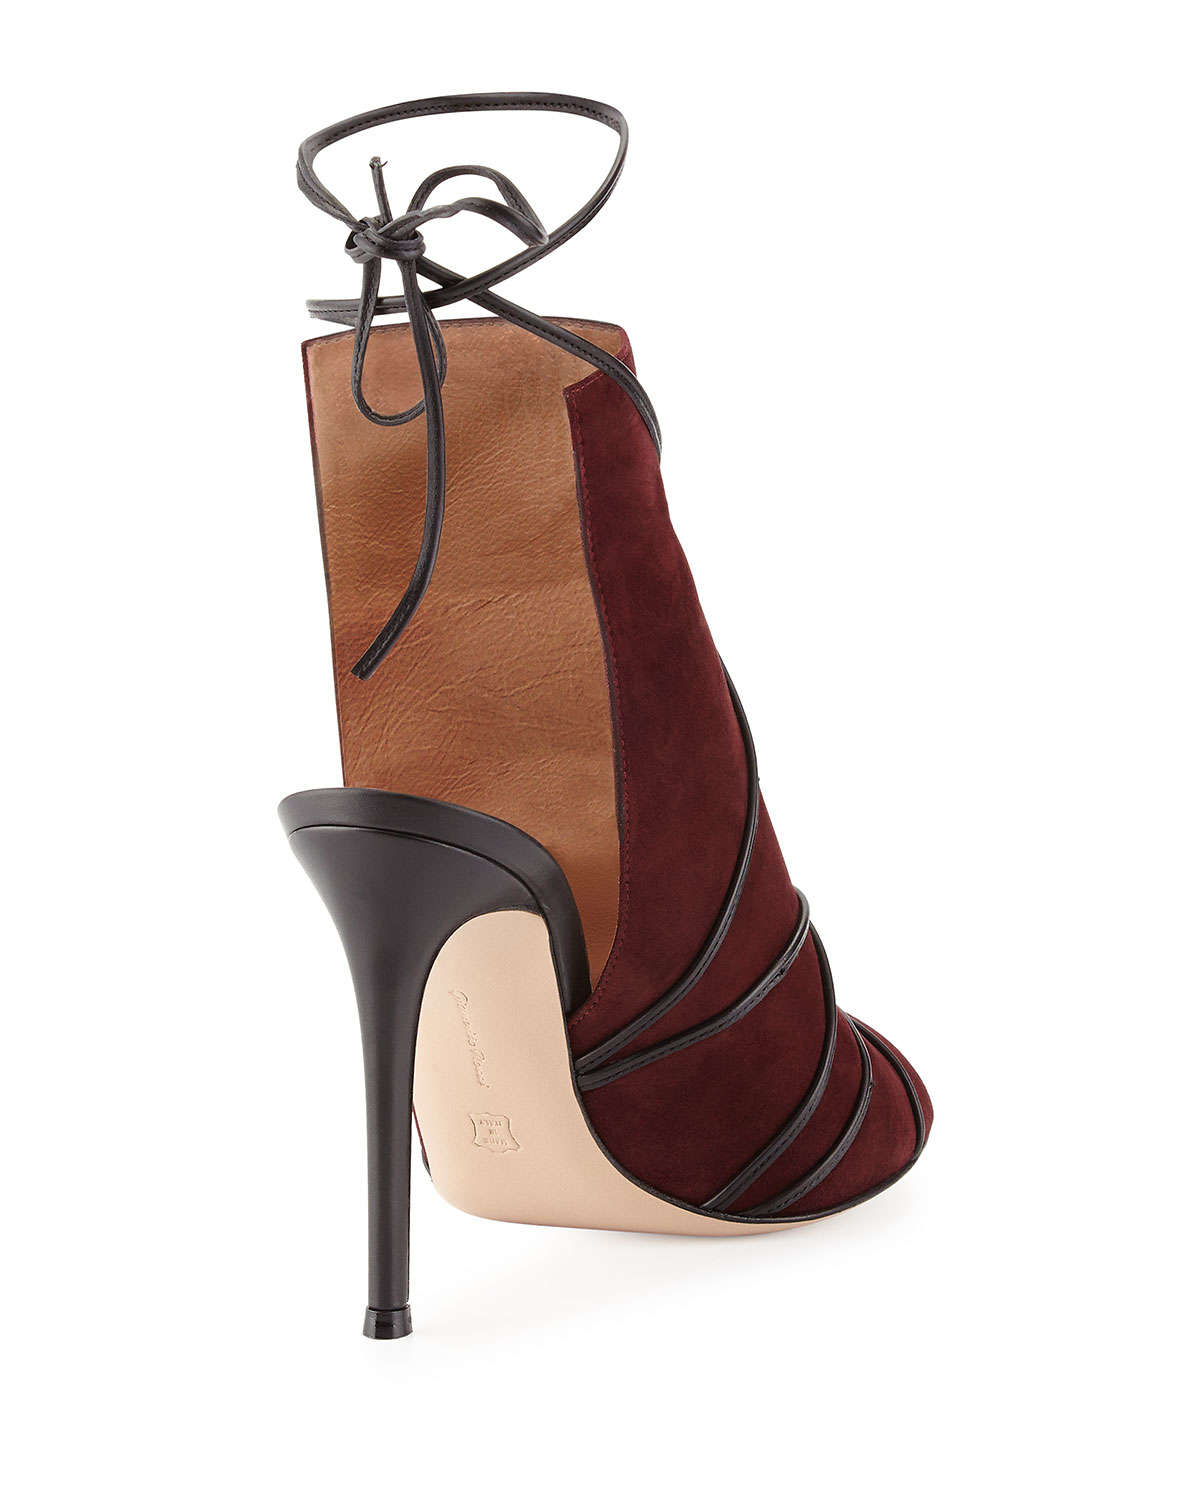 Gianvito rossi Suede Open-Toe Ankle-Tie Bootie in Red | Lyst